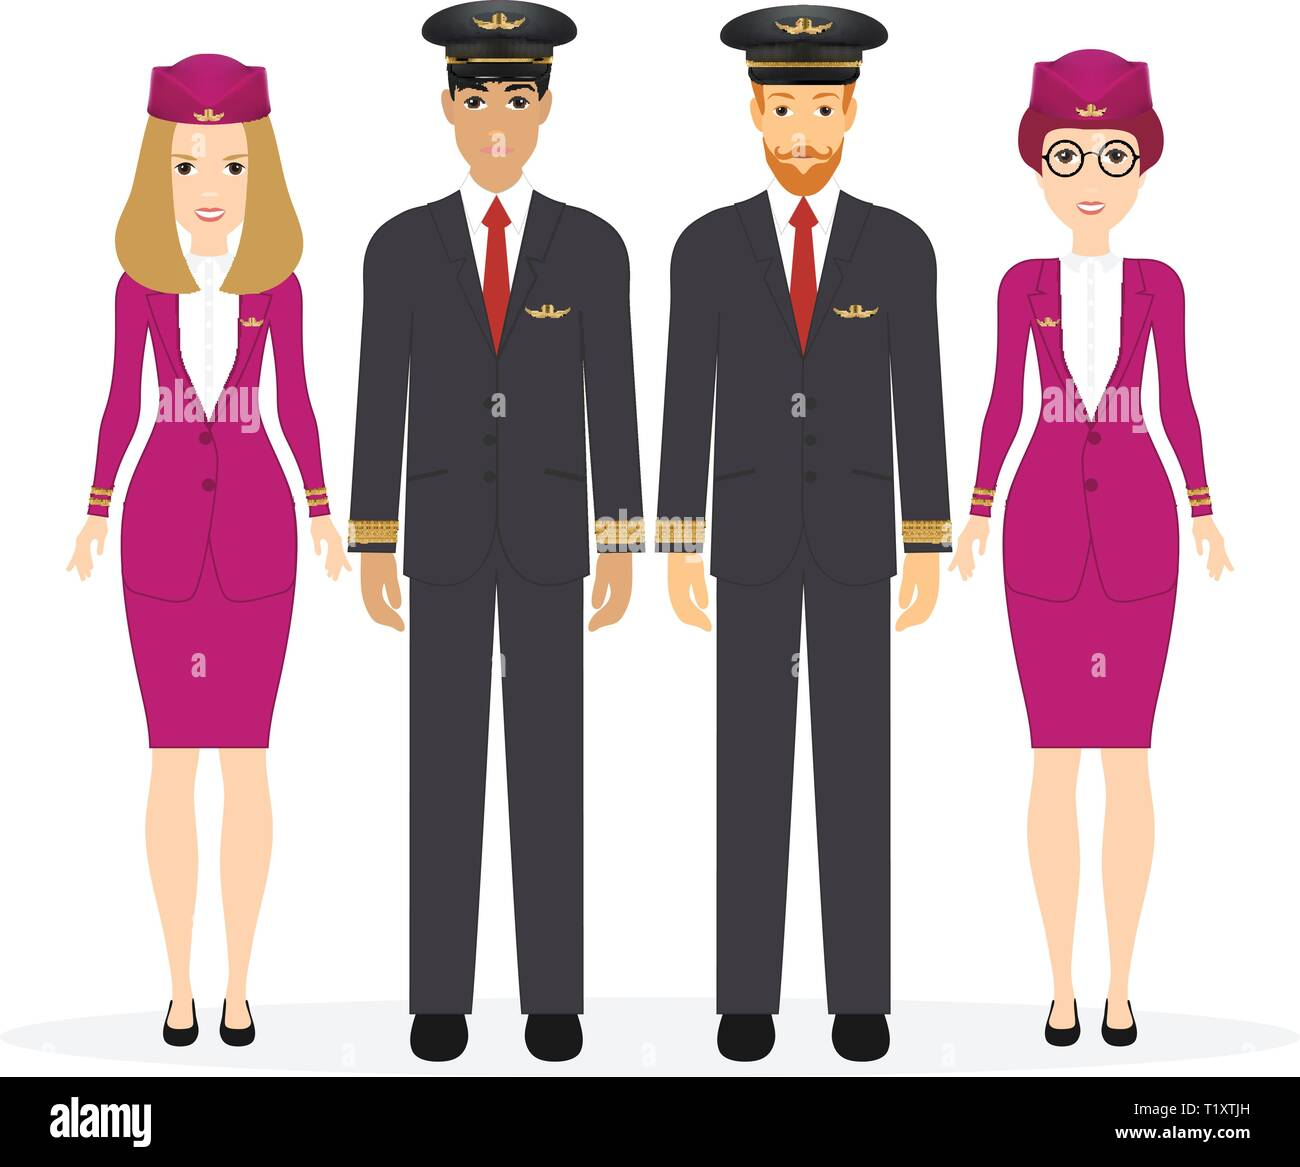 3bf16bdcdc327 Air Hostess Stock Vector Images - Alamy